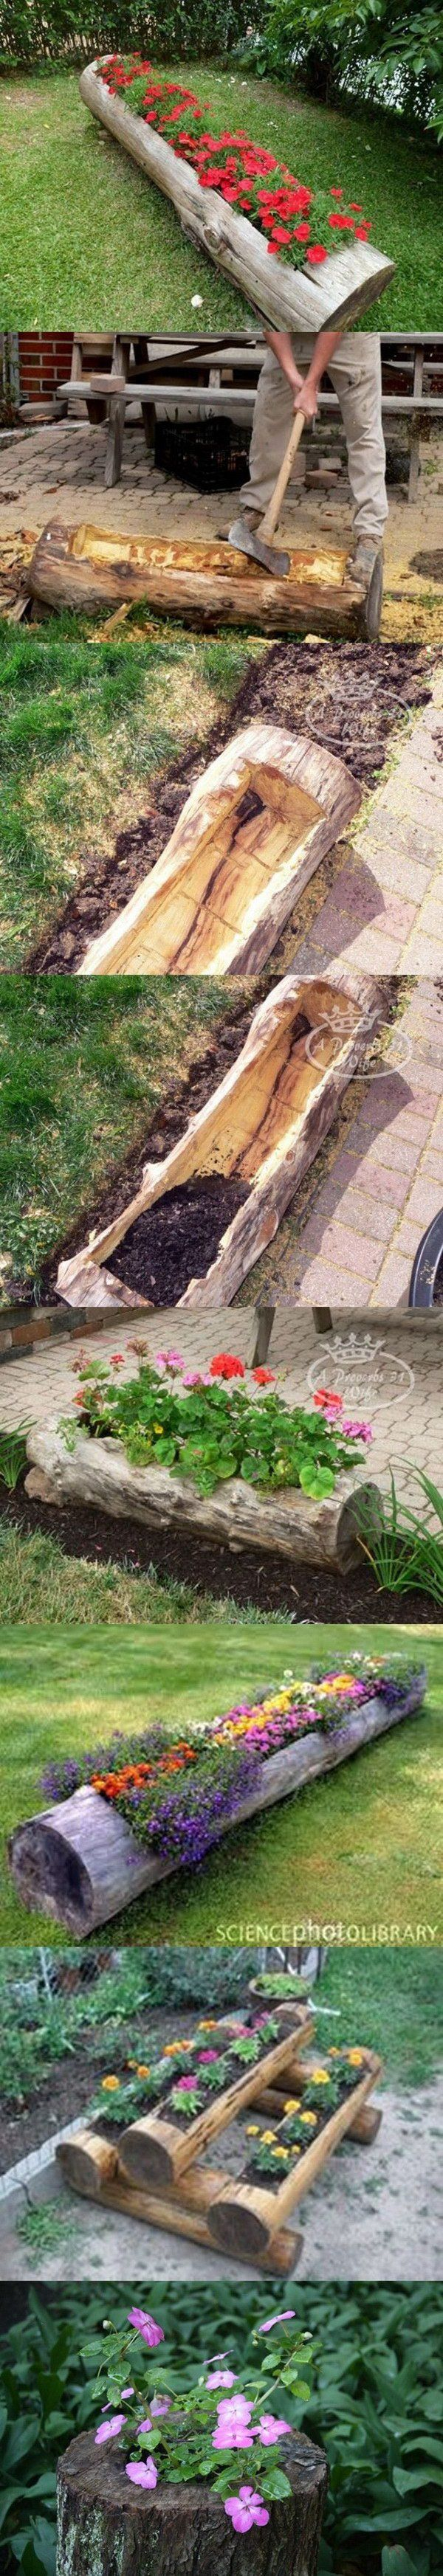 nice 35+ Creative Garden Hacks & Tips That Every Gardener Should Know